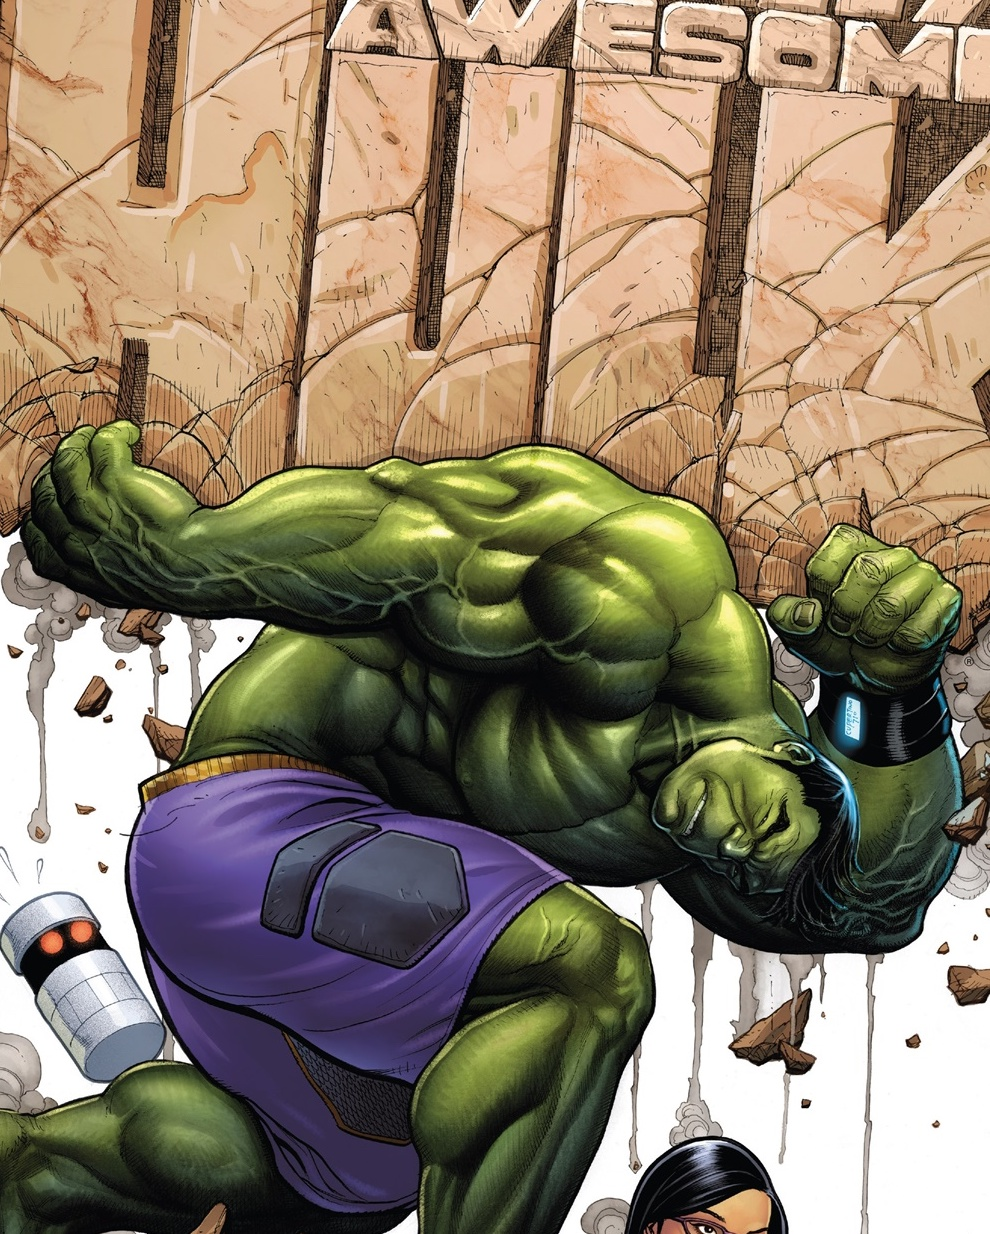 Get to know the monster inside Amadeus Cho.